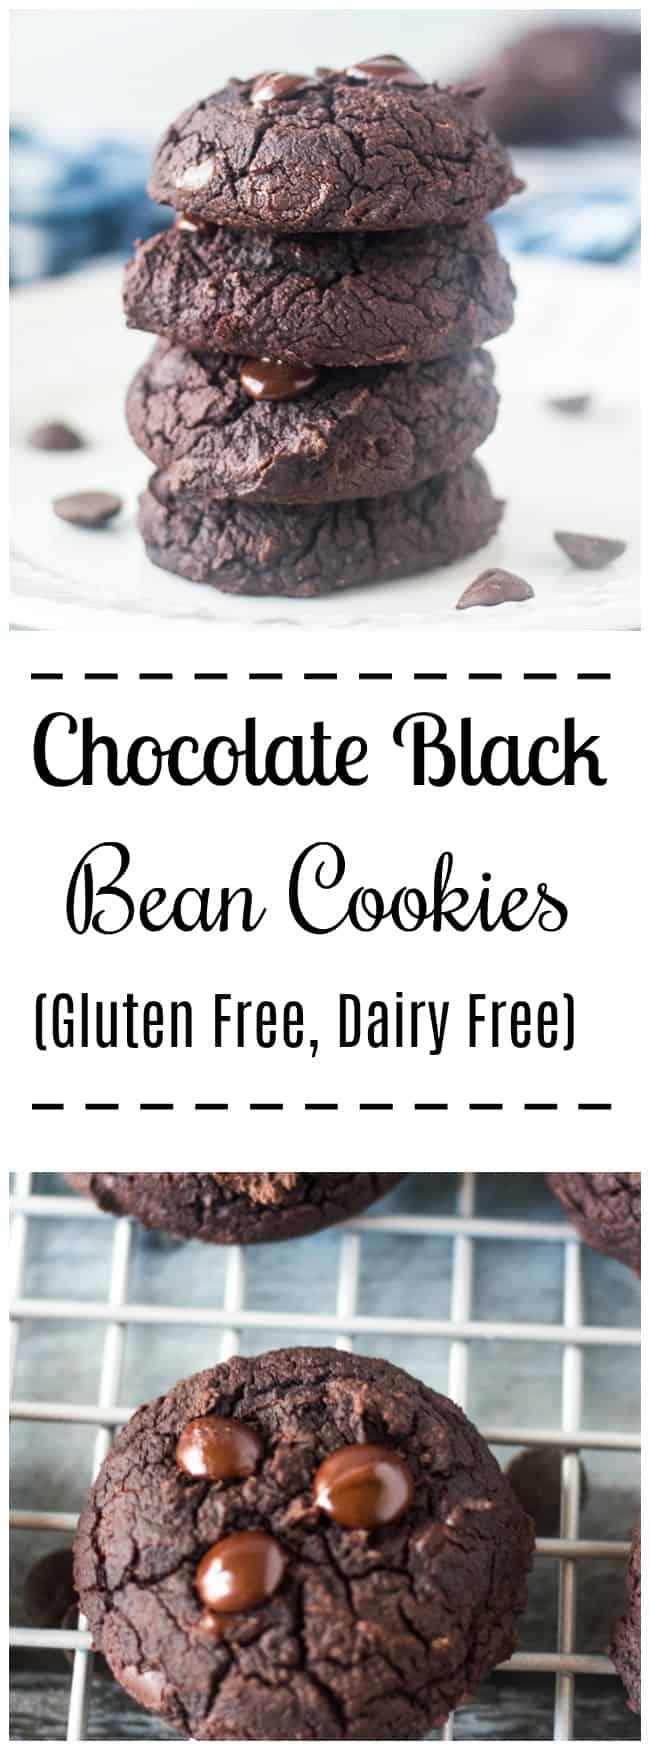 These Chocolate Black Bean Cookies are super easy to make in one bowl and in under 20 minutes. Rich, decadent healthy cookies made with black beans. Gluten Free, Dairy Free, Easy. Kid friendly and great for breakfast, snacks or dessert.